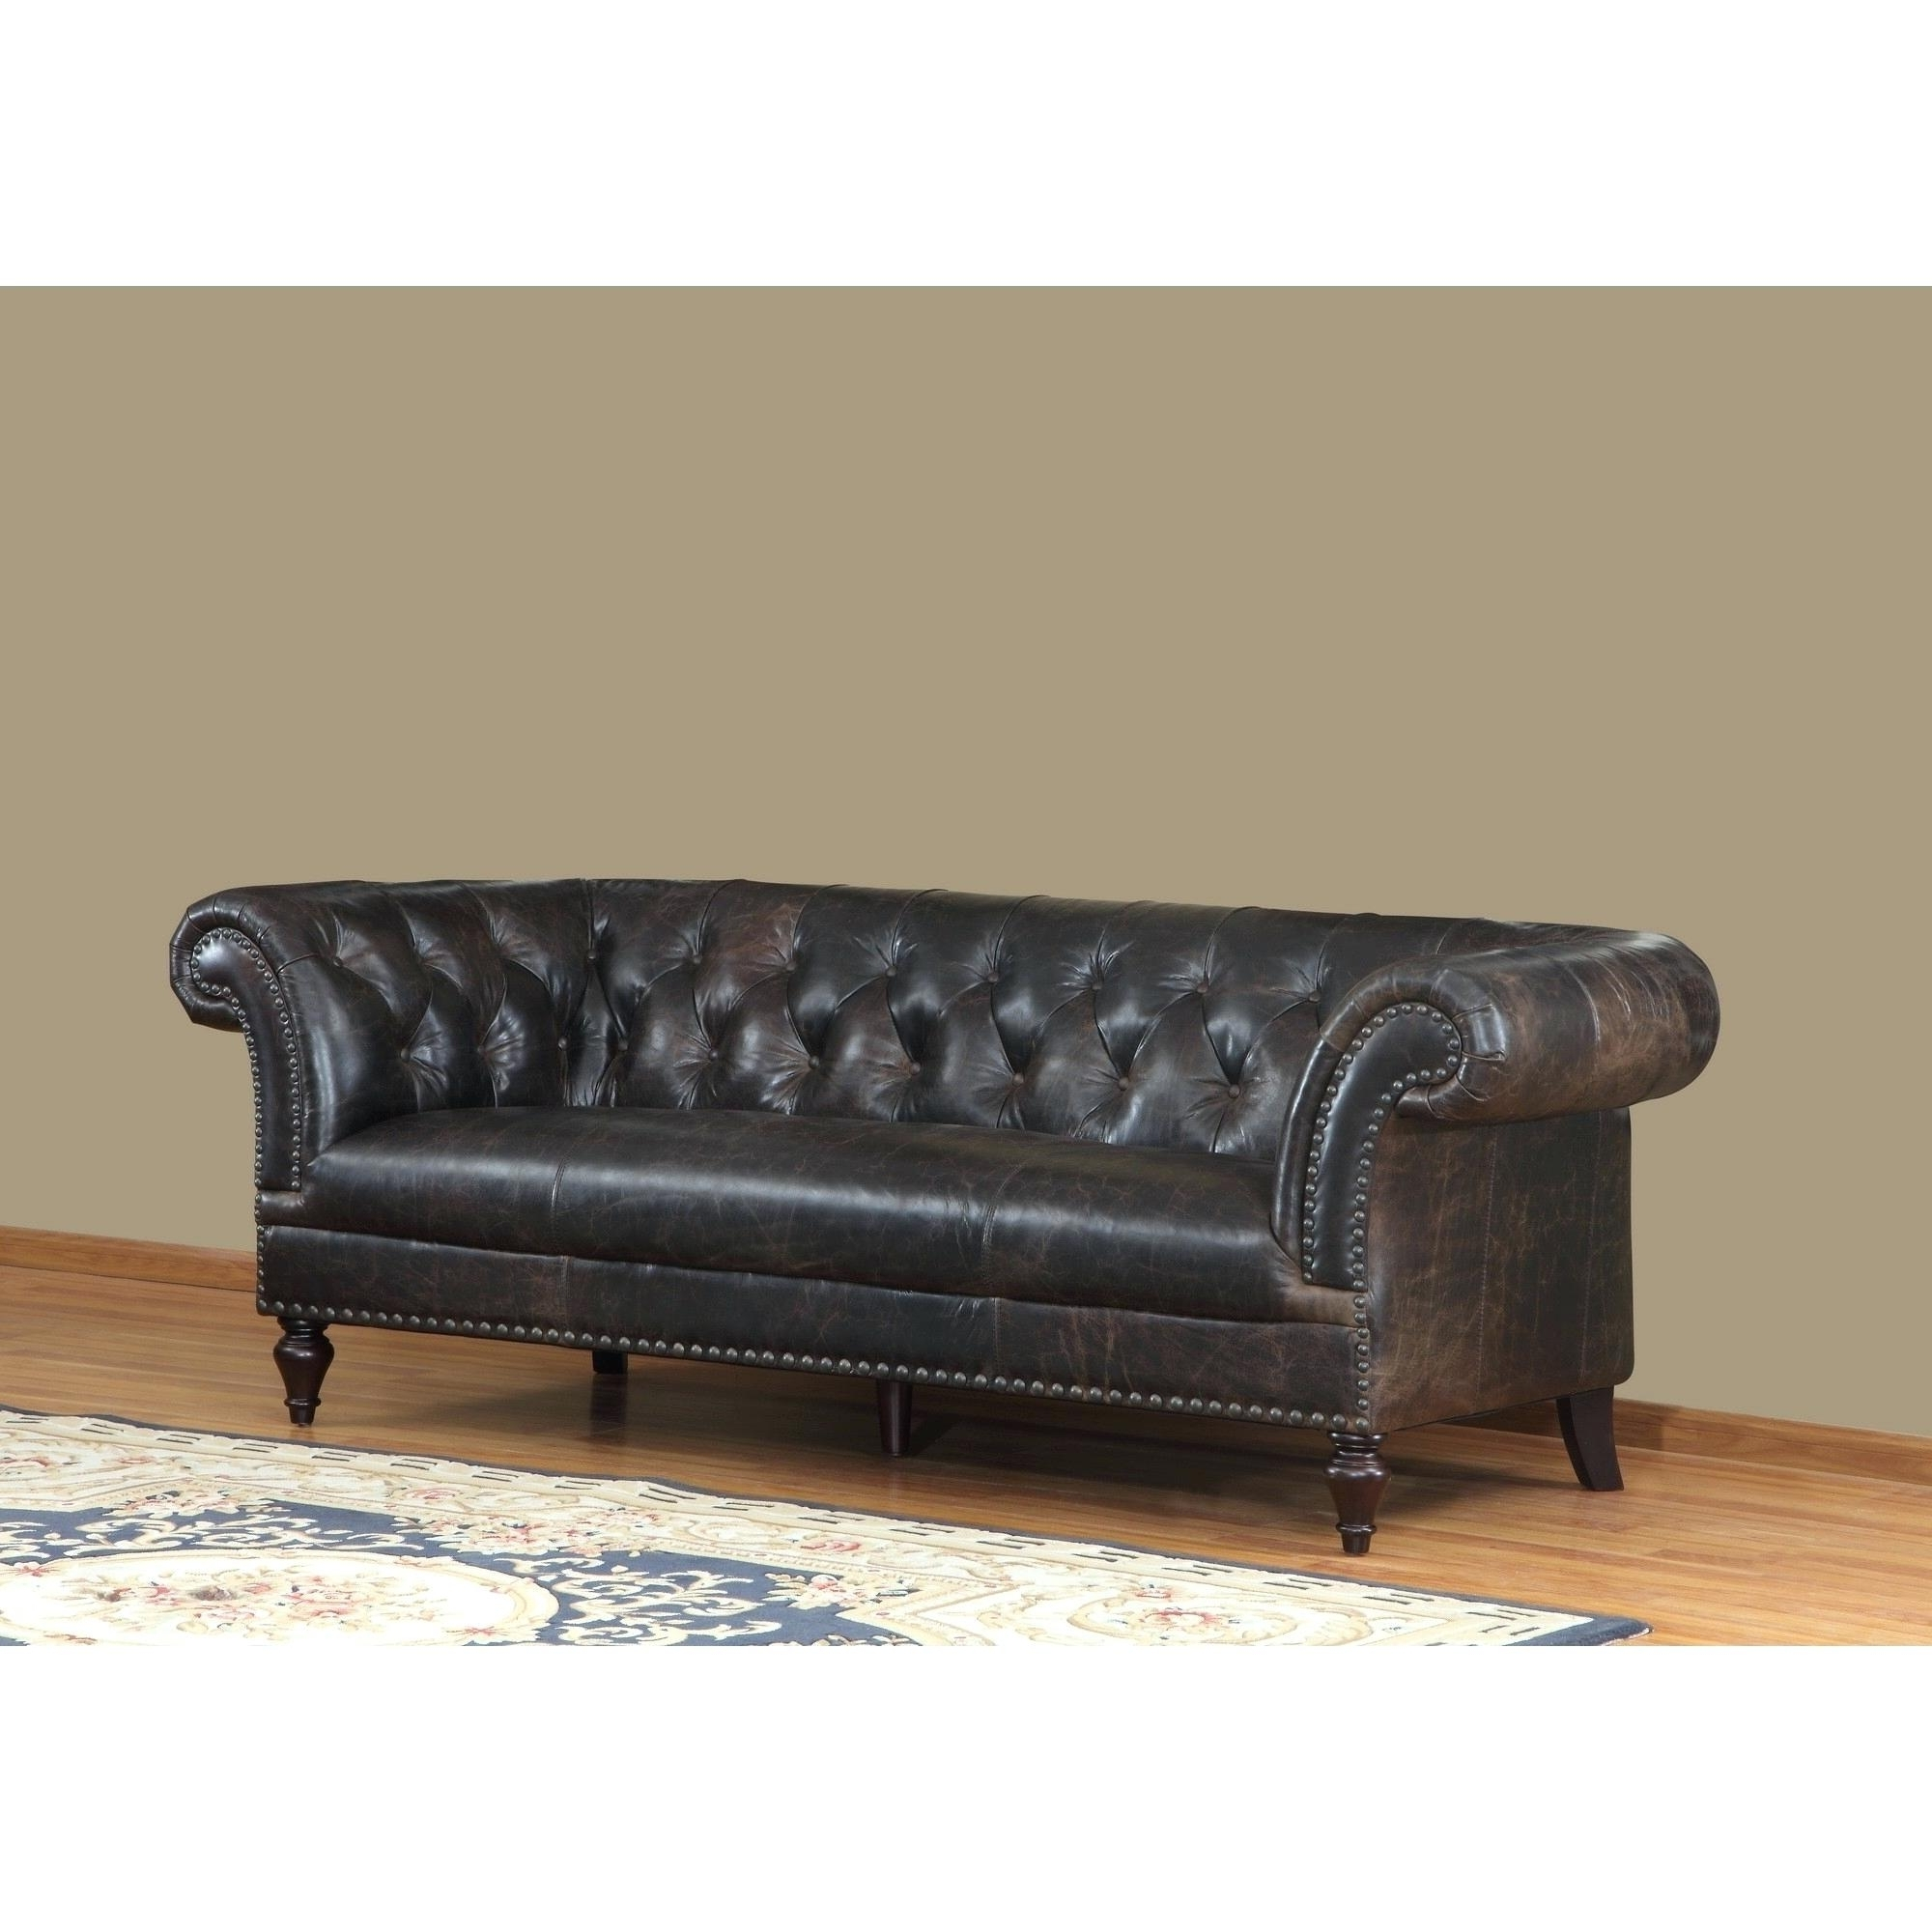 Most Recently Released Tufted Sofa Leather Awesome Grey Set Sectional Craigslist Button In Craigslist Leather Sofas (View 7 of 20)